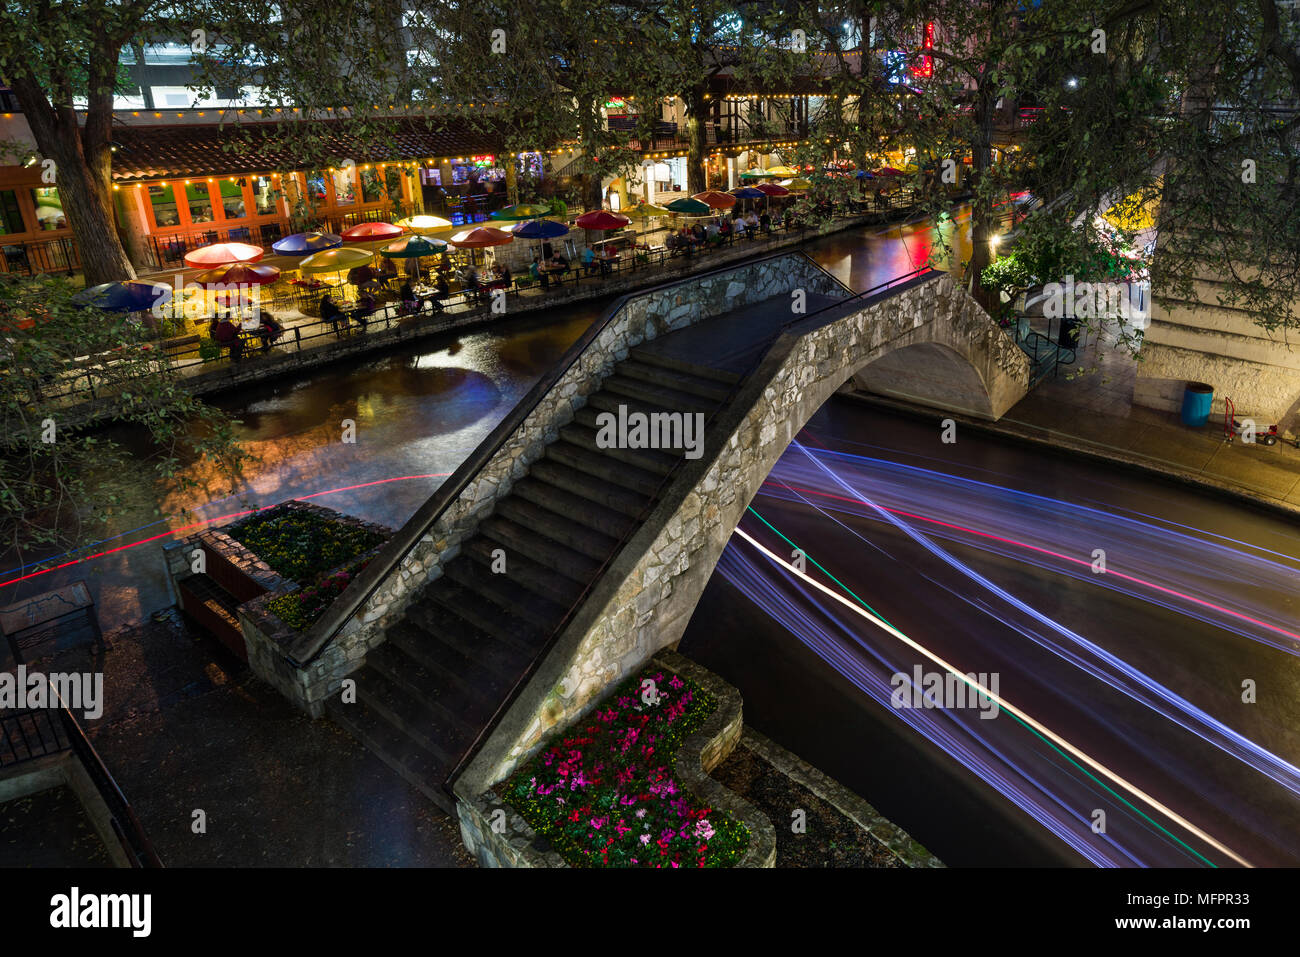 Part Of The San Antonio Riverwalk With People Walking Over A